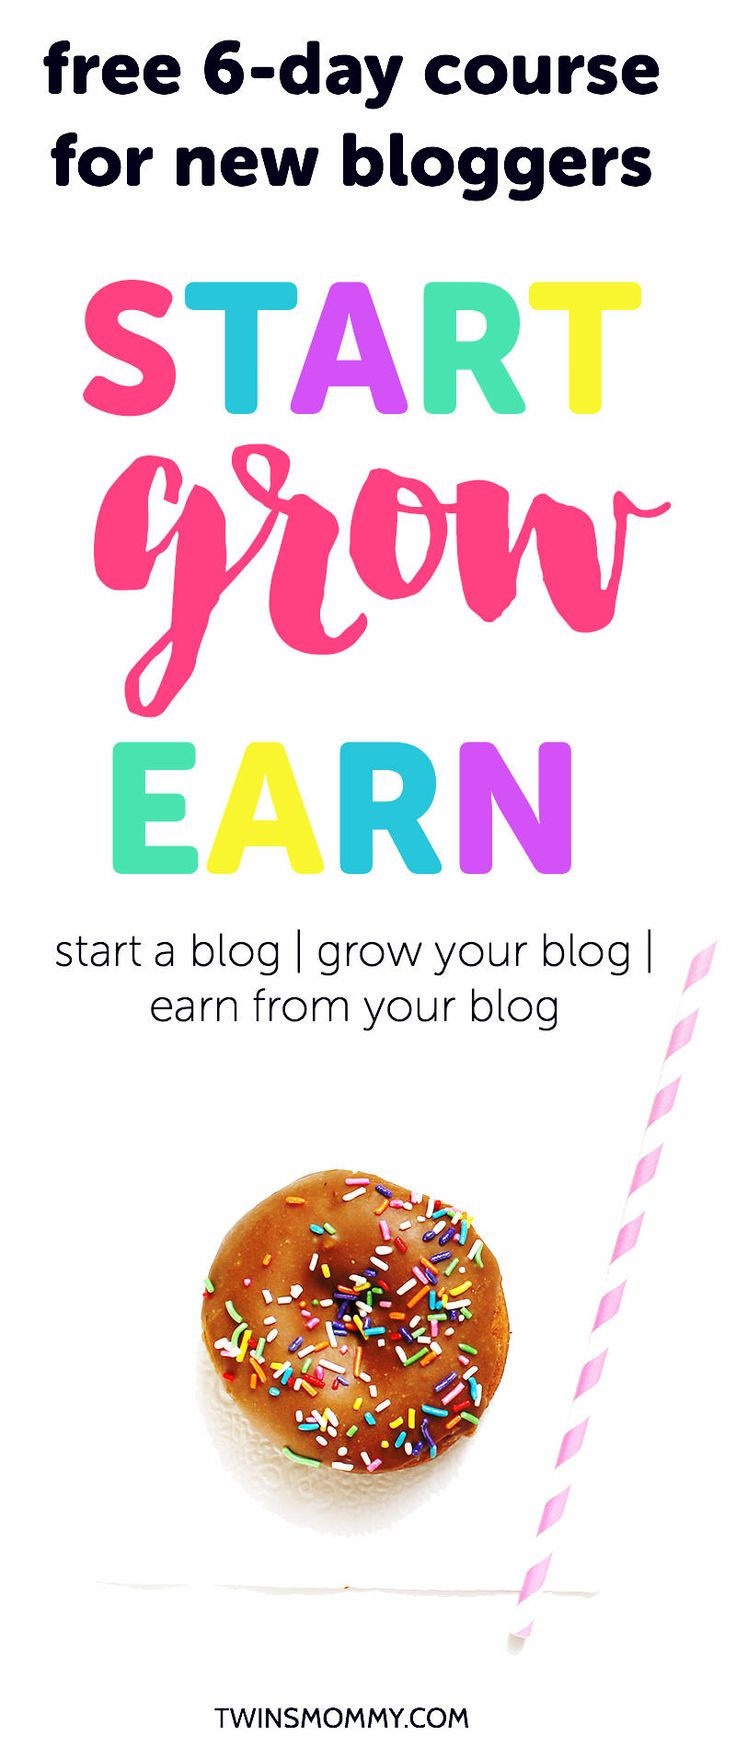 New blogger? Need help growing your blog traffic? Check out these blogging tips in this 6 day free email course. It will help you start a blog using SiteGround and WordPress, grow your blog traffic and earn money from blogging.